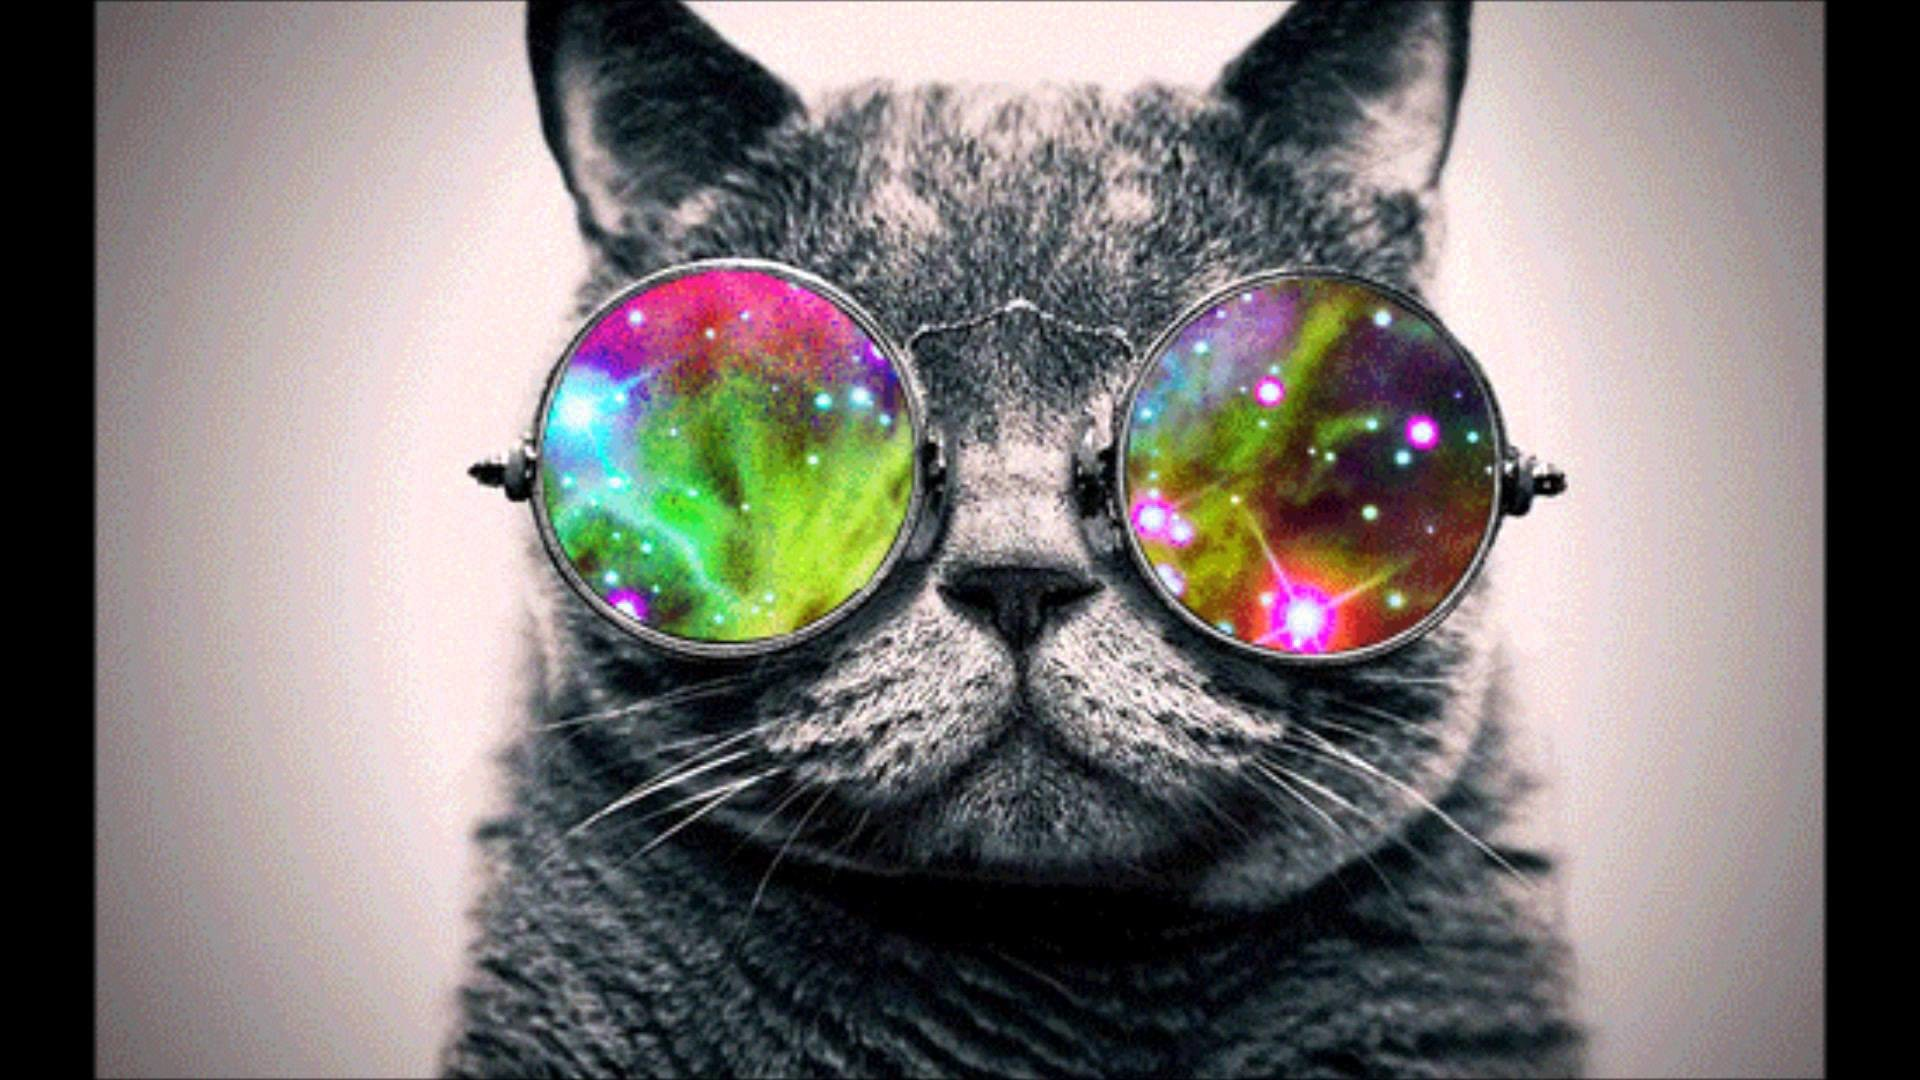 Cool Cat Picture from Cats. Cool Cat with shades